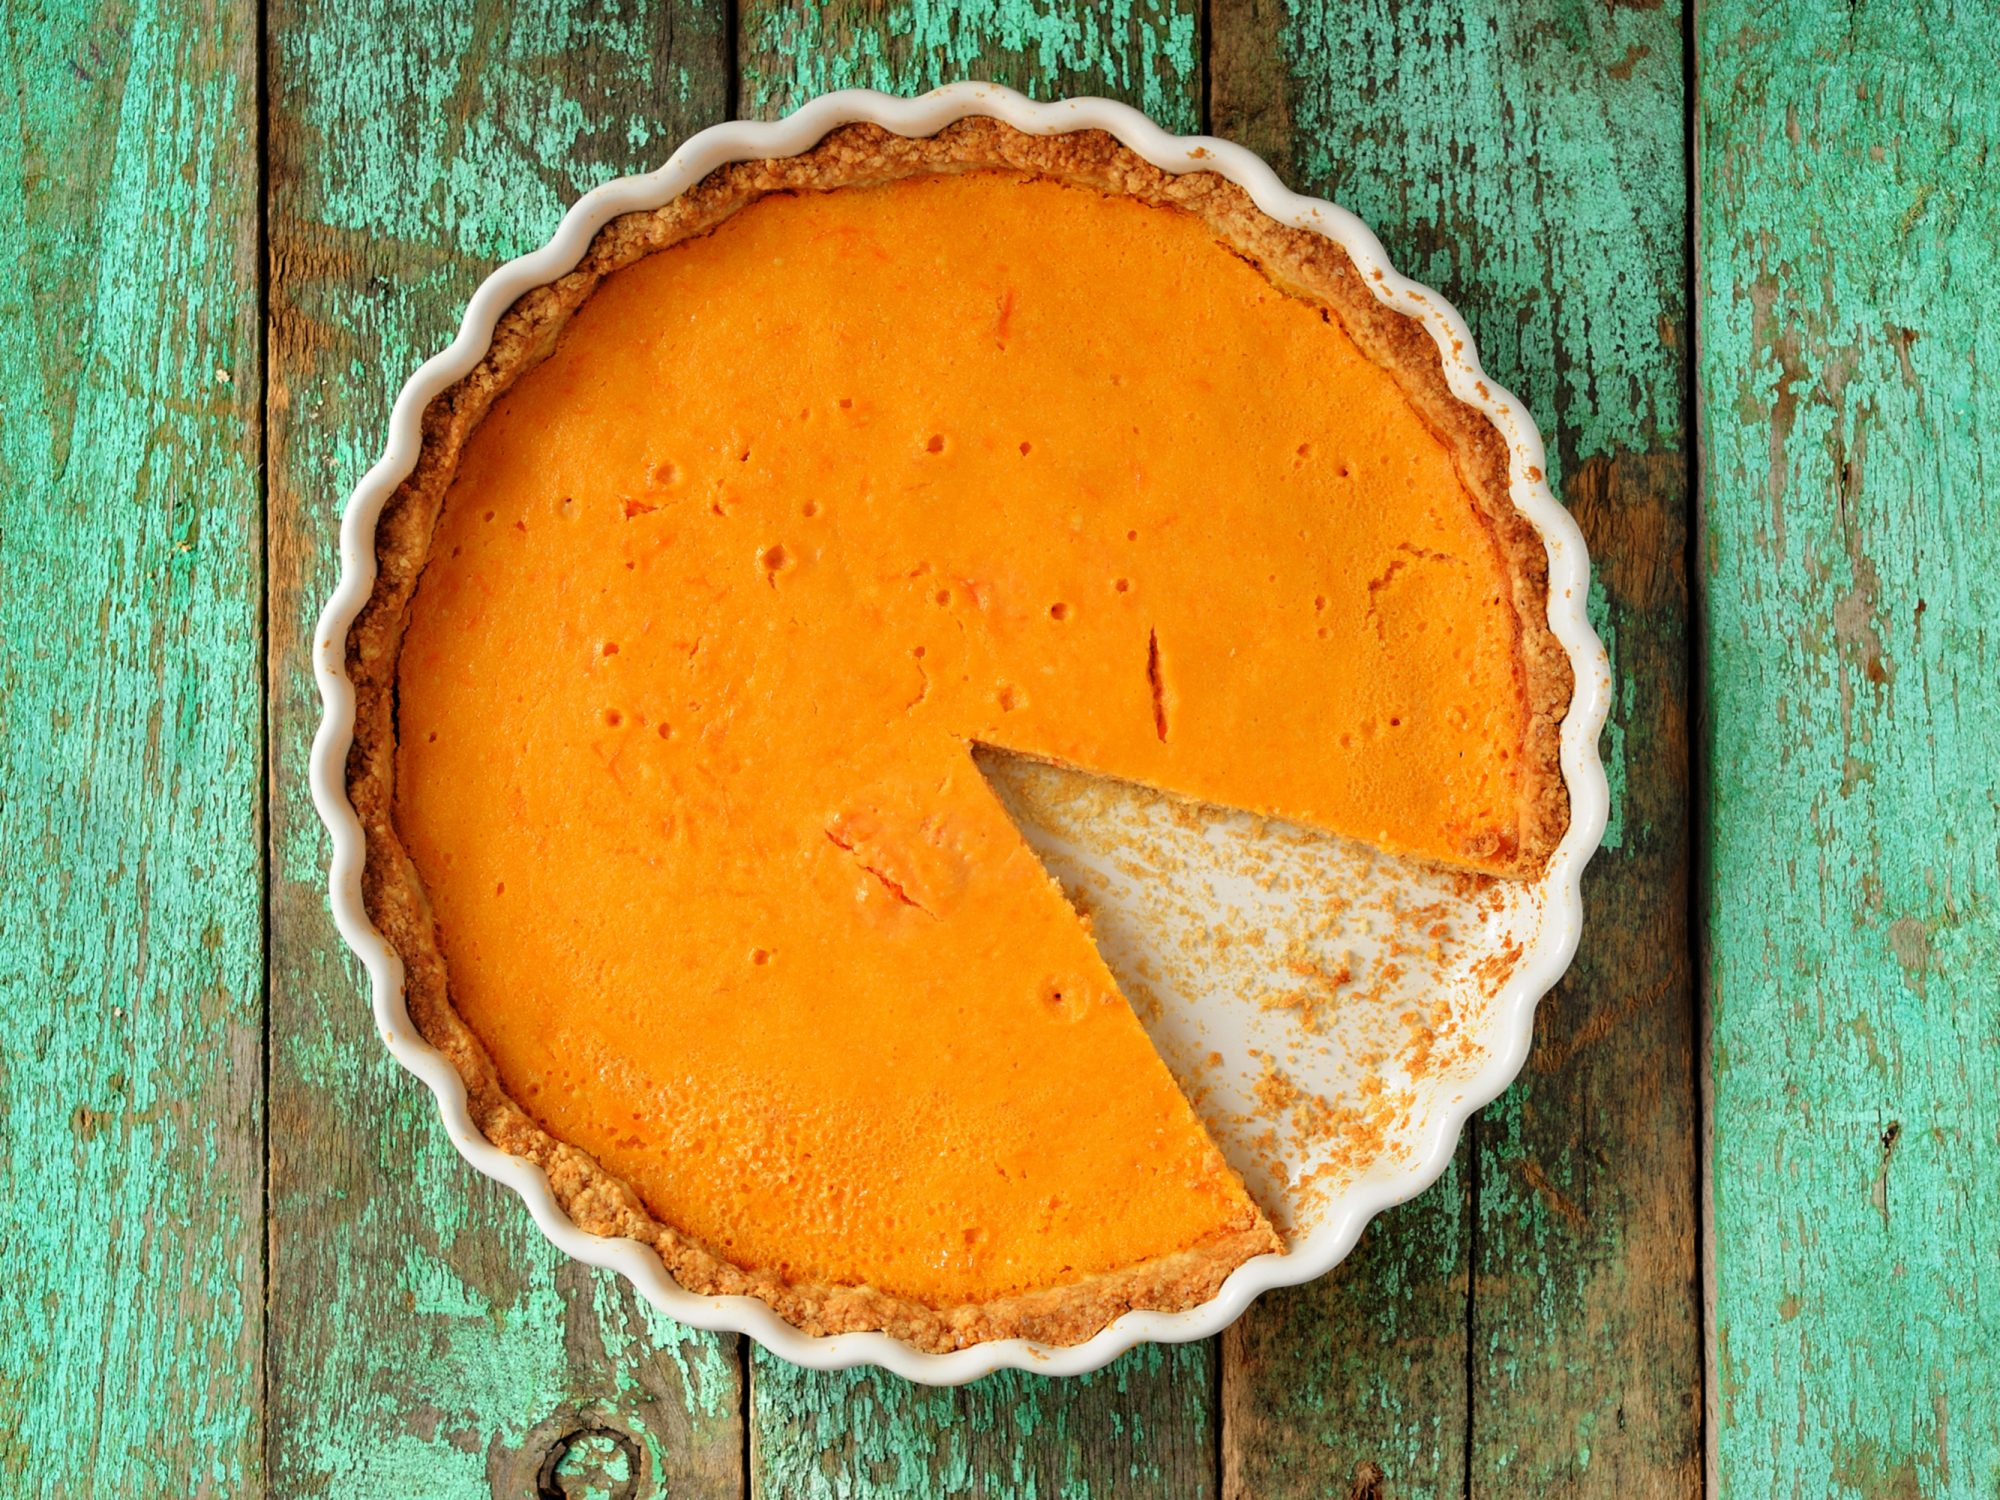 Homemade Pumpkin Pie in White Baking Dish